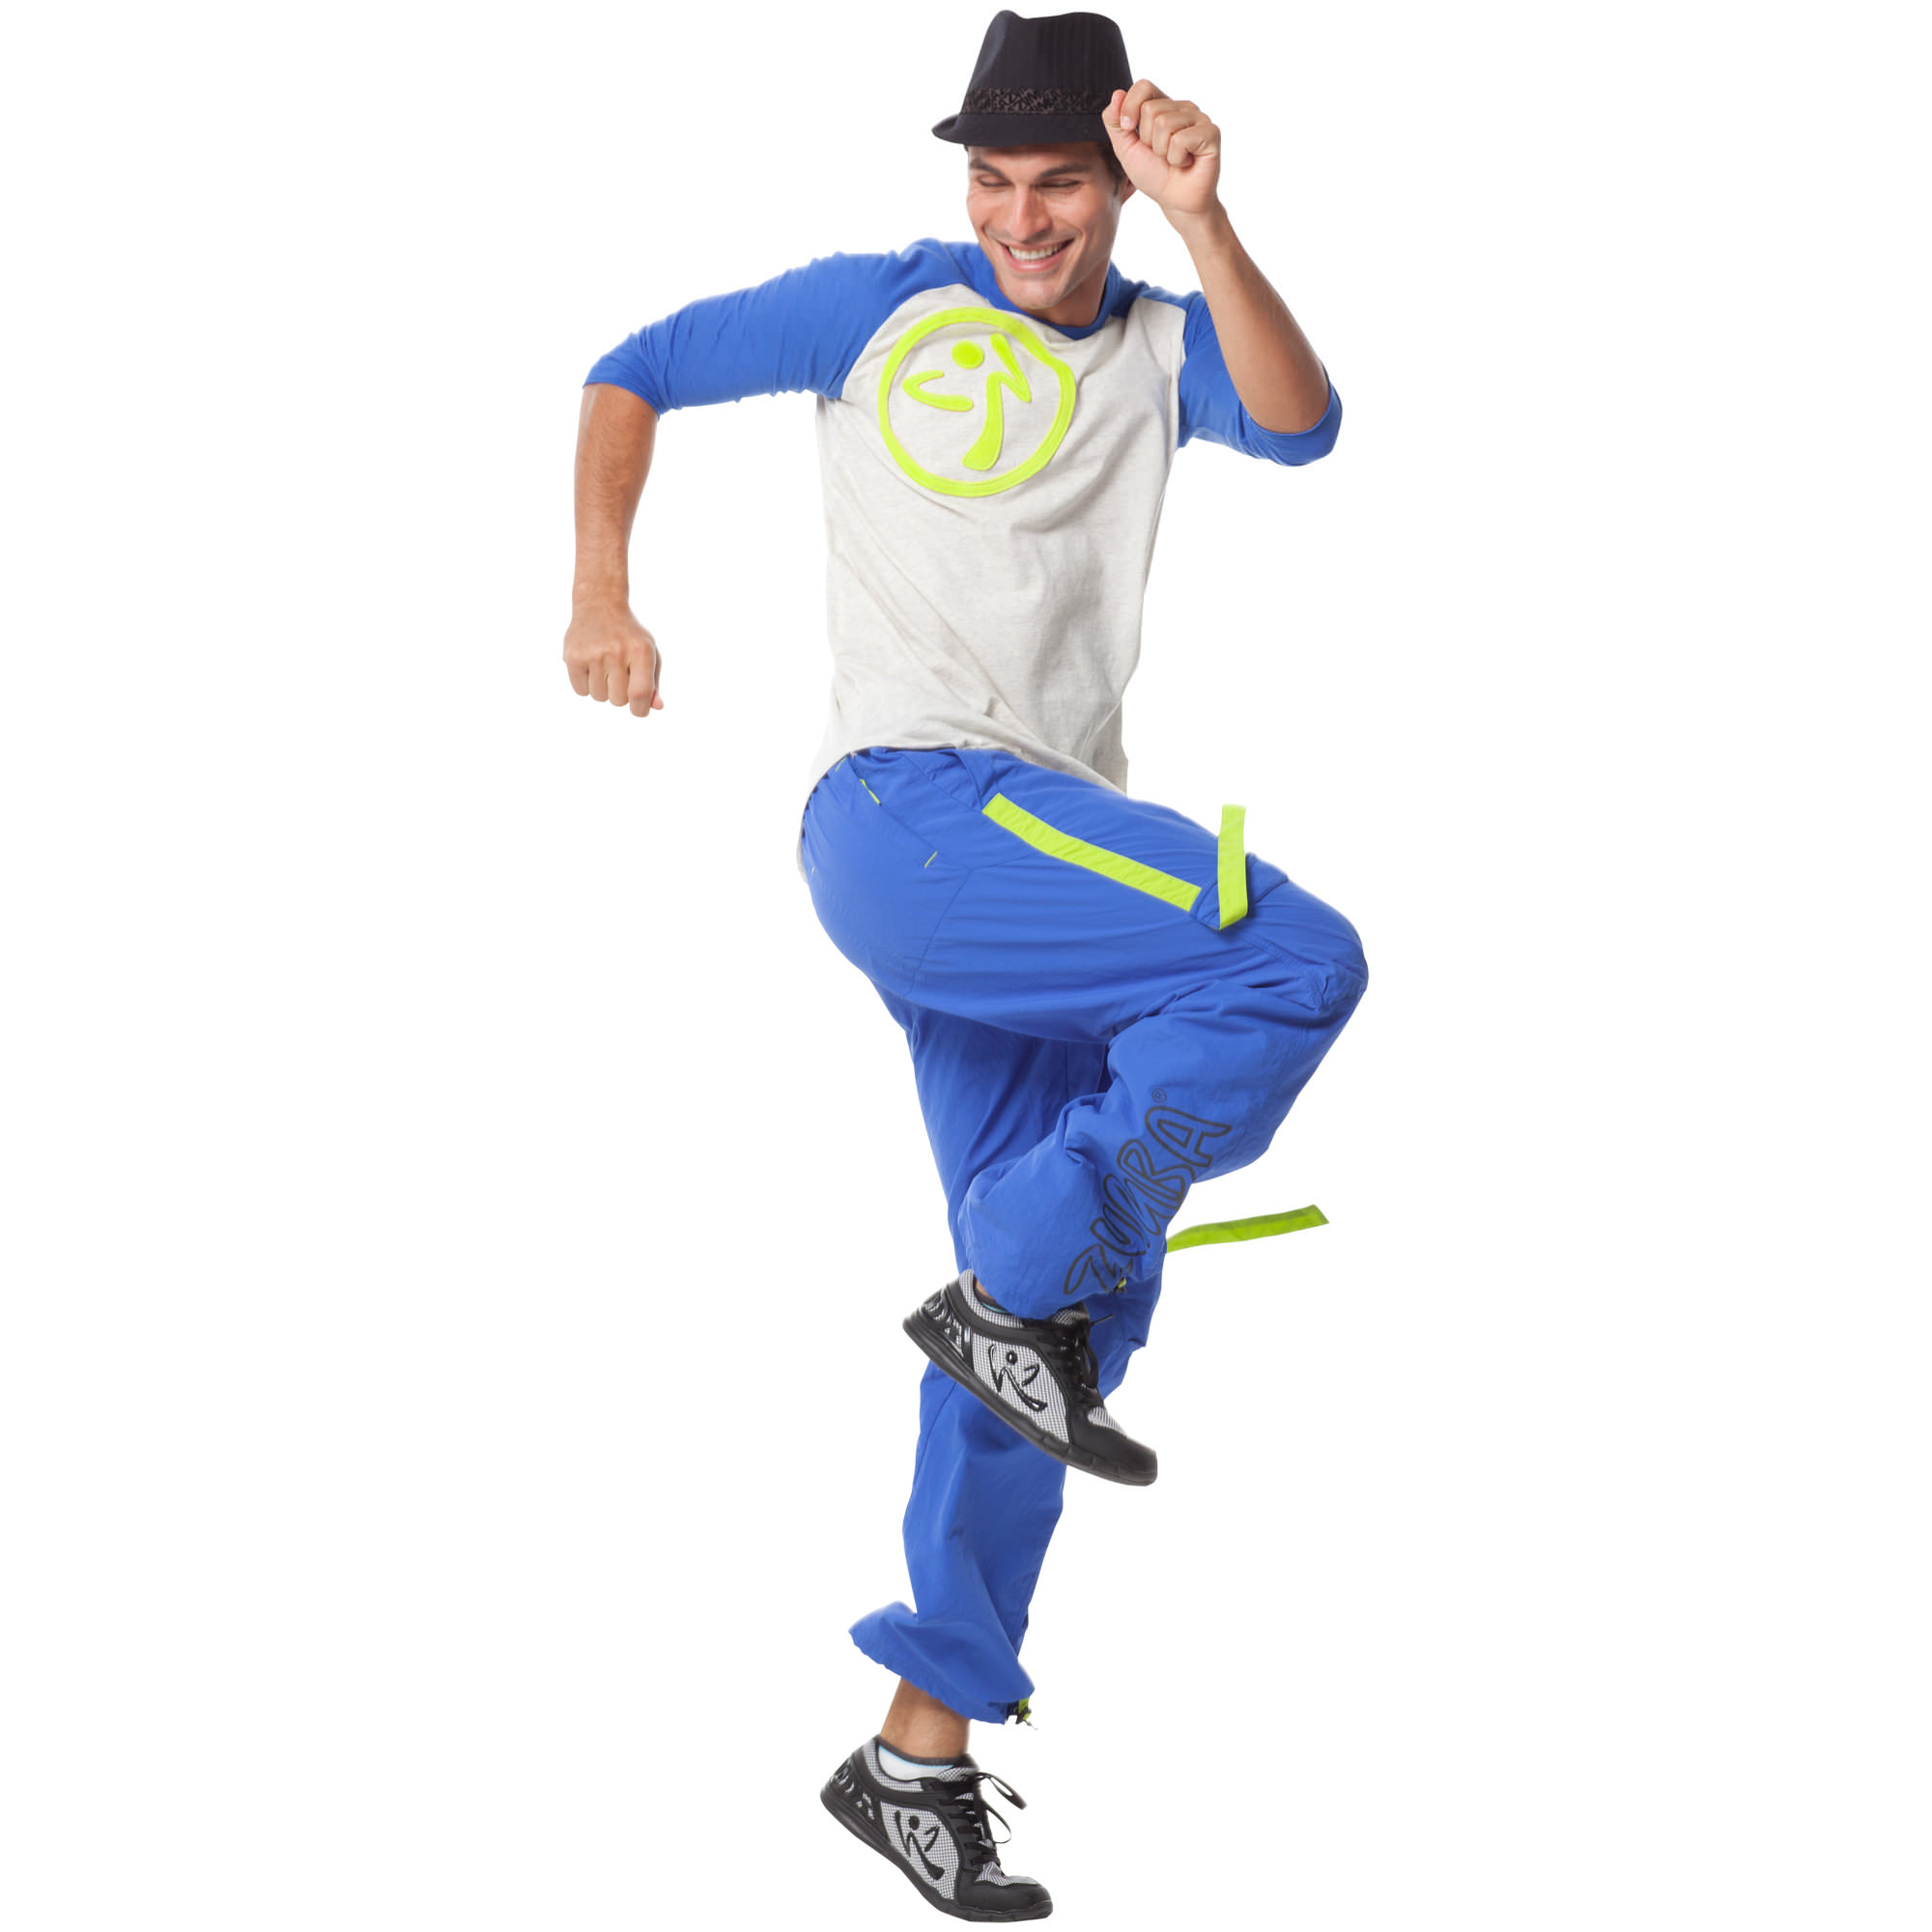 Zumba Clothes and Fitness Apparels for Men and Women. Buy the latest Zumba Wear, Fitness Apparels, shoes, Workout Clothes, Activewear and more for your next Zumba Fitness class. Shop with Confidence! Zumba clothing, zumba fitness apparels, Zumba Wear. February 24,